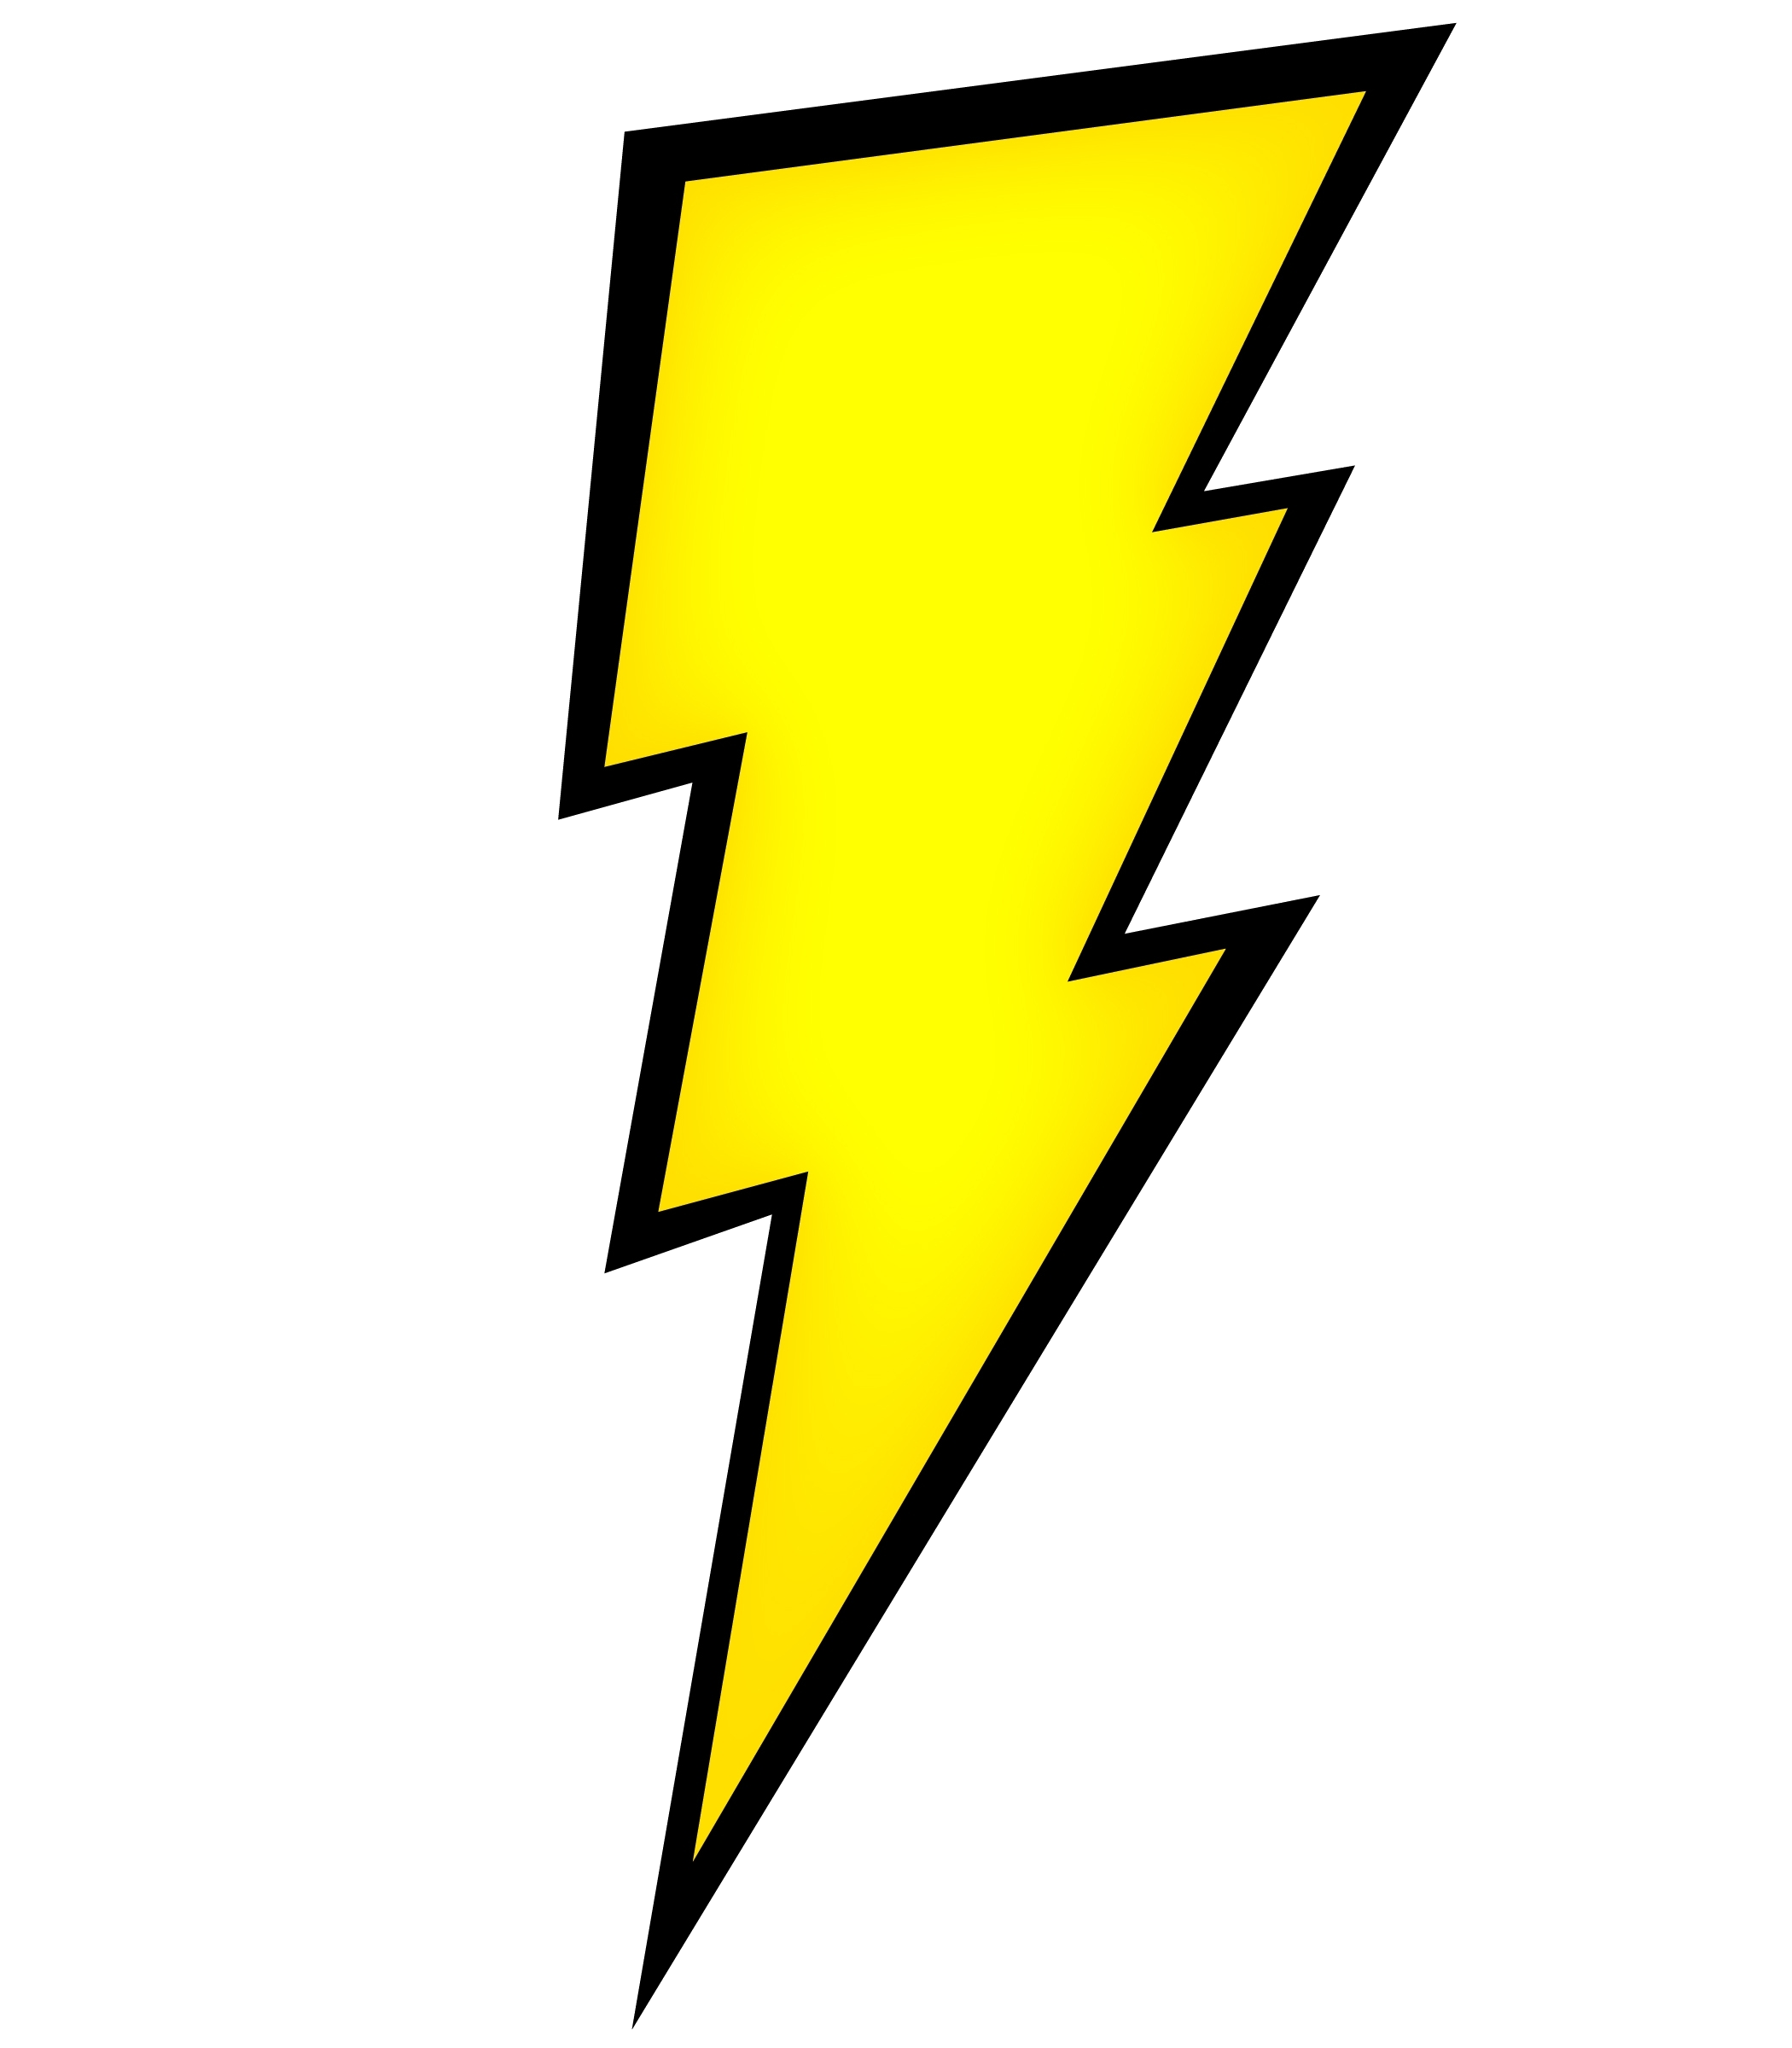 Zeus Lightning Cloud Clip art.